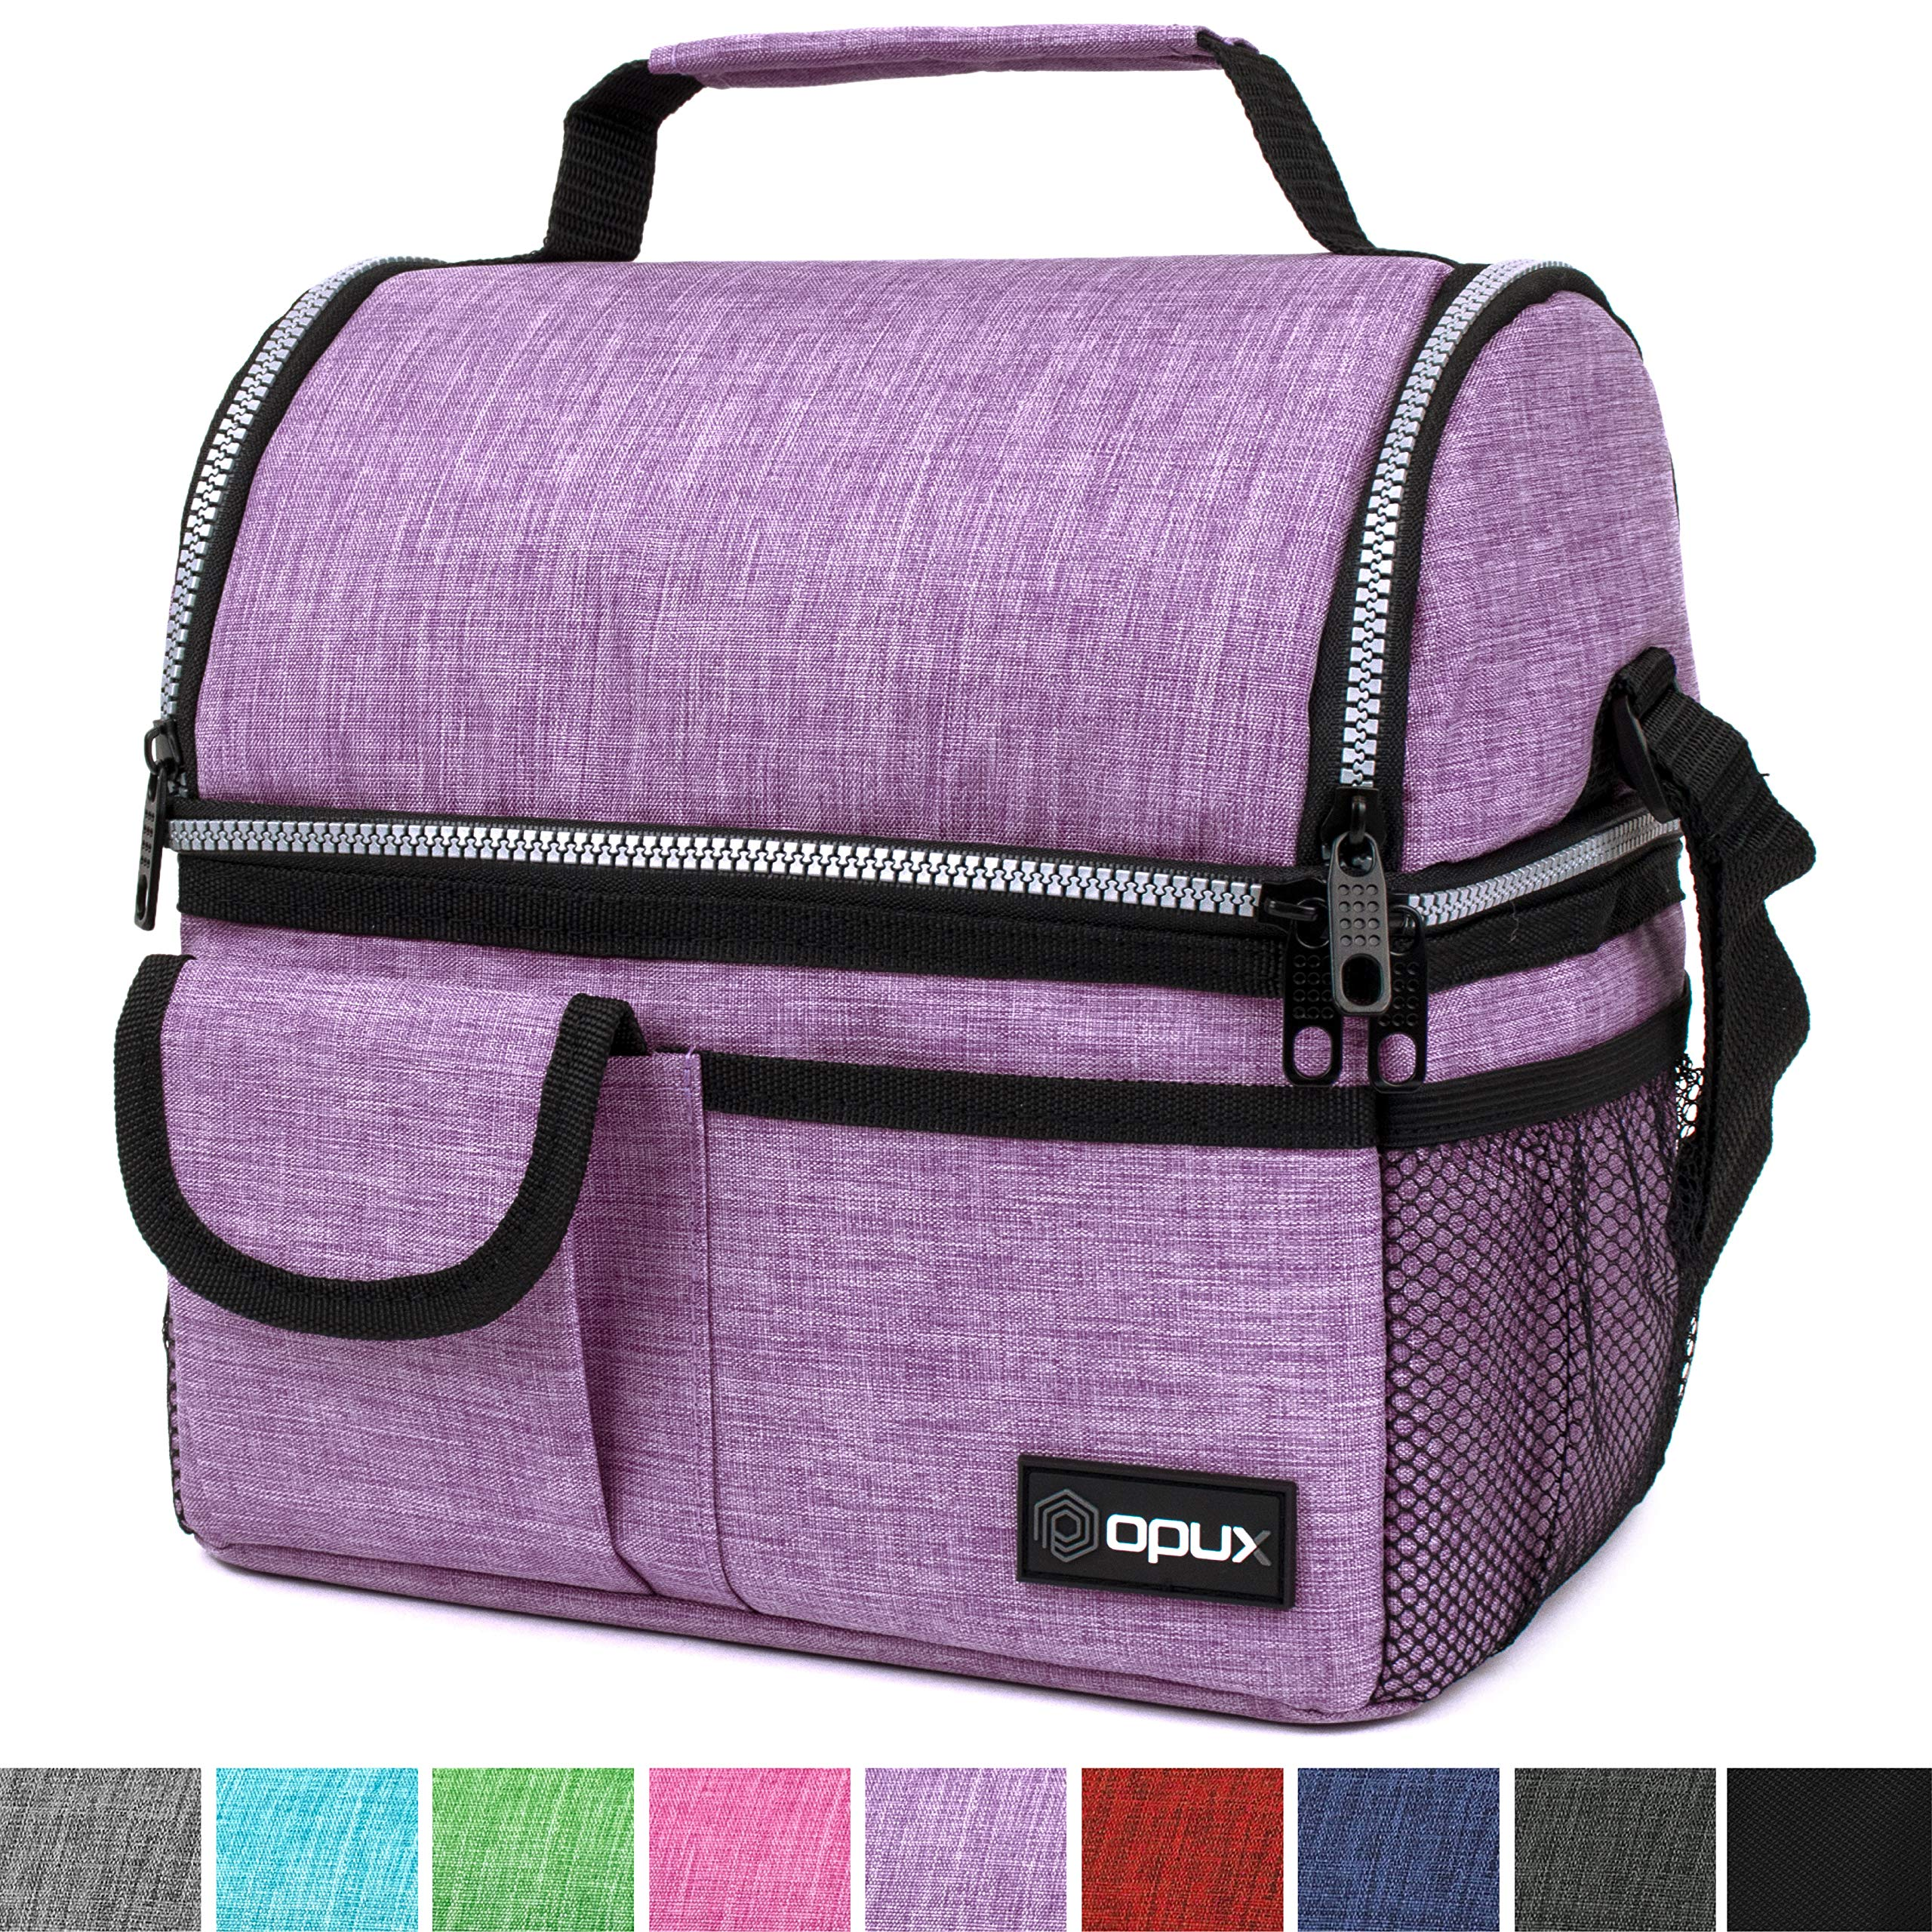 OPUX Insulated Dual Compartment Lunch Bag for Women | Double Deck Reusable Lunch Pail Cooler Bag with Shoulder Strap, Soft Leakproof Liner | Large Lunch Box Tote for Work, School (Purple) by OPUX